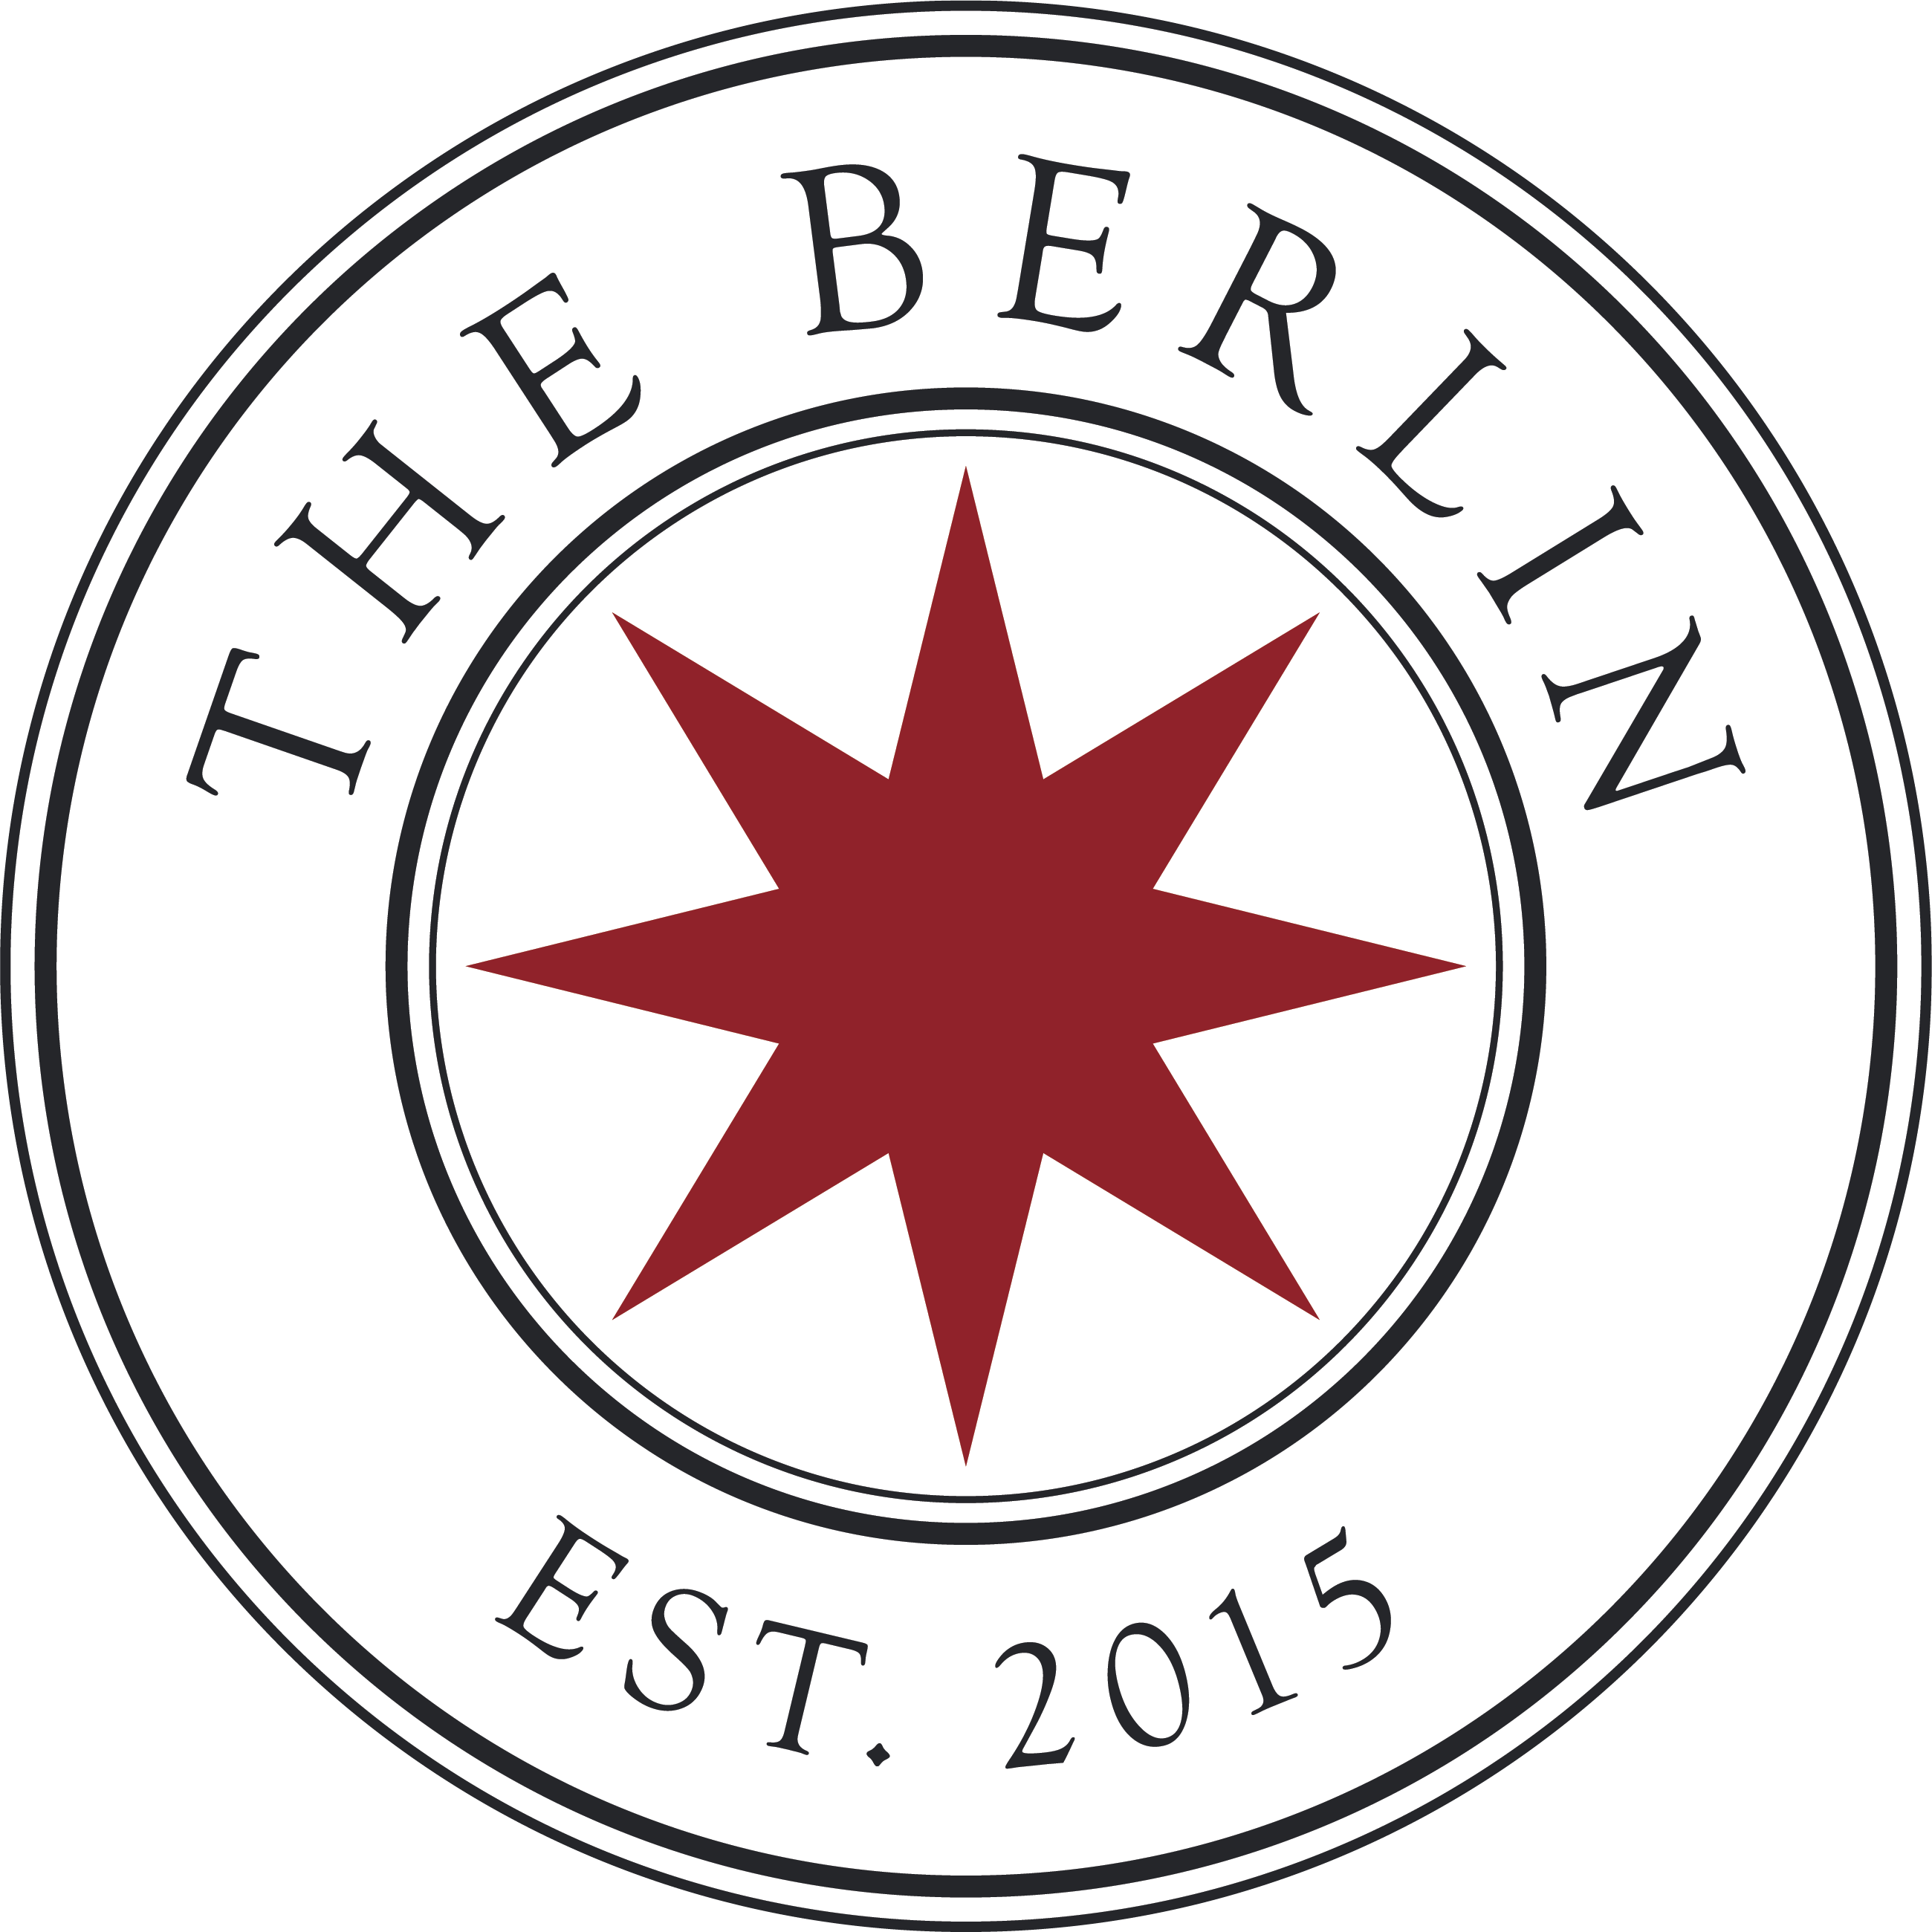 The Berlin Logo